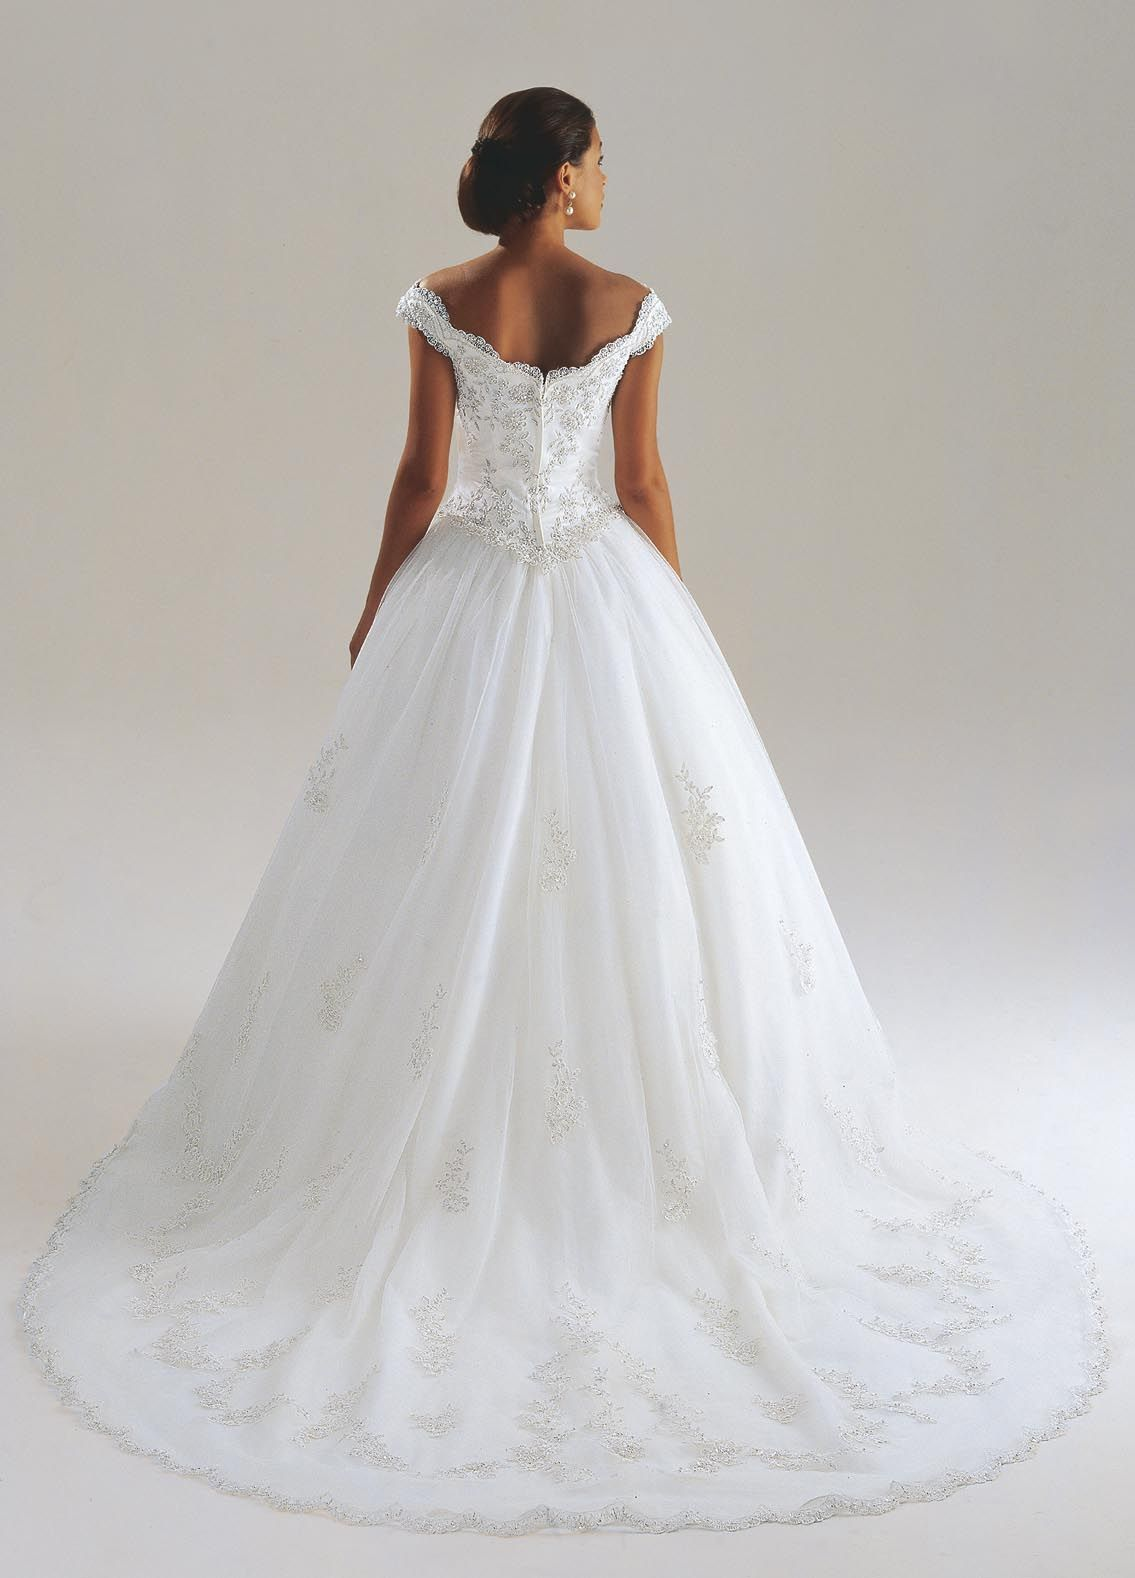 Cheap silver dresses for weddings  Style   Wedding Gowns  DaVinci Bridal  Available Colours